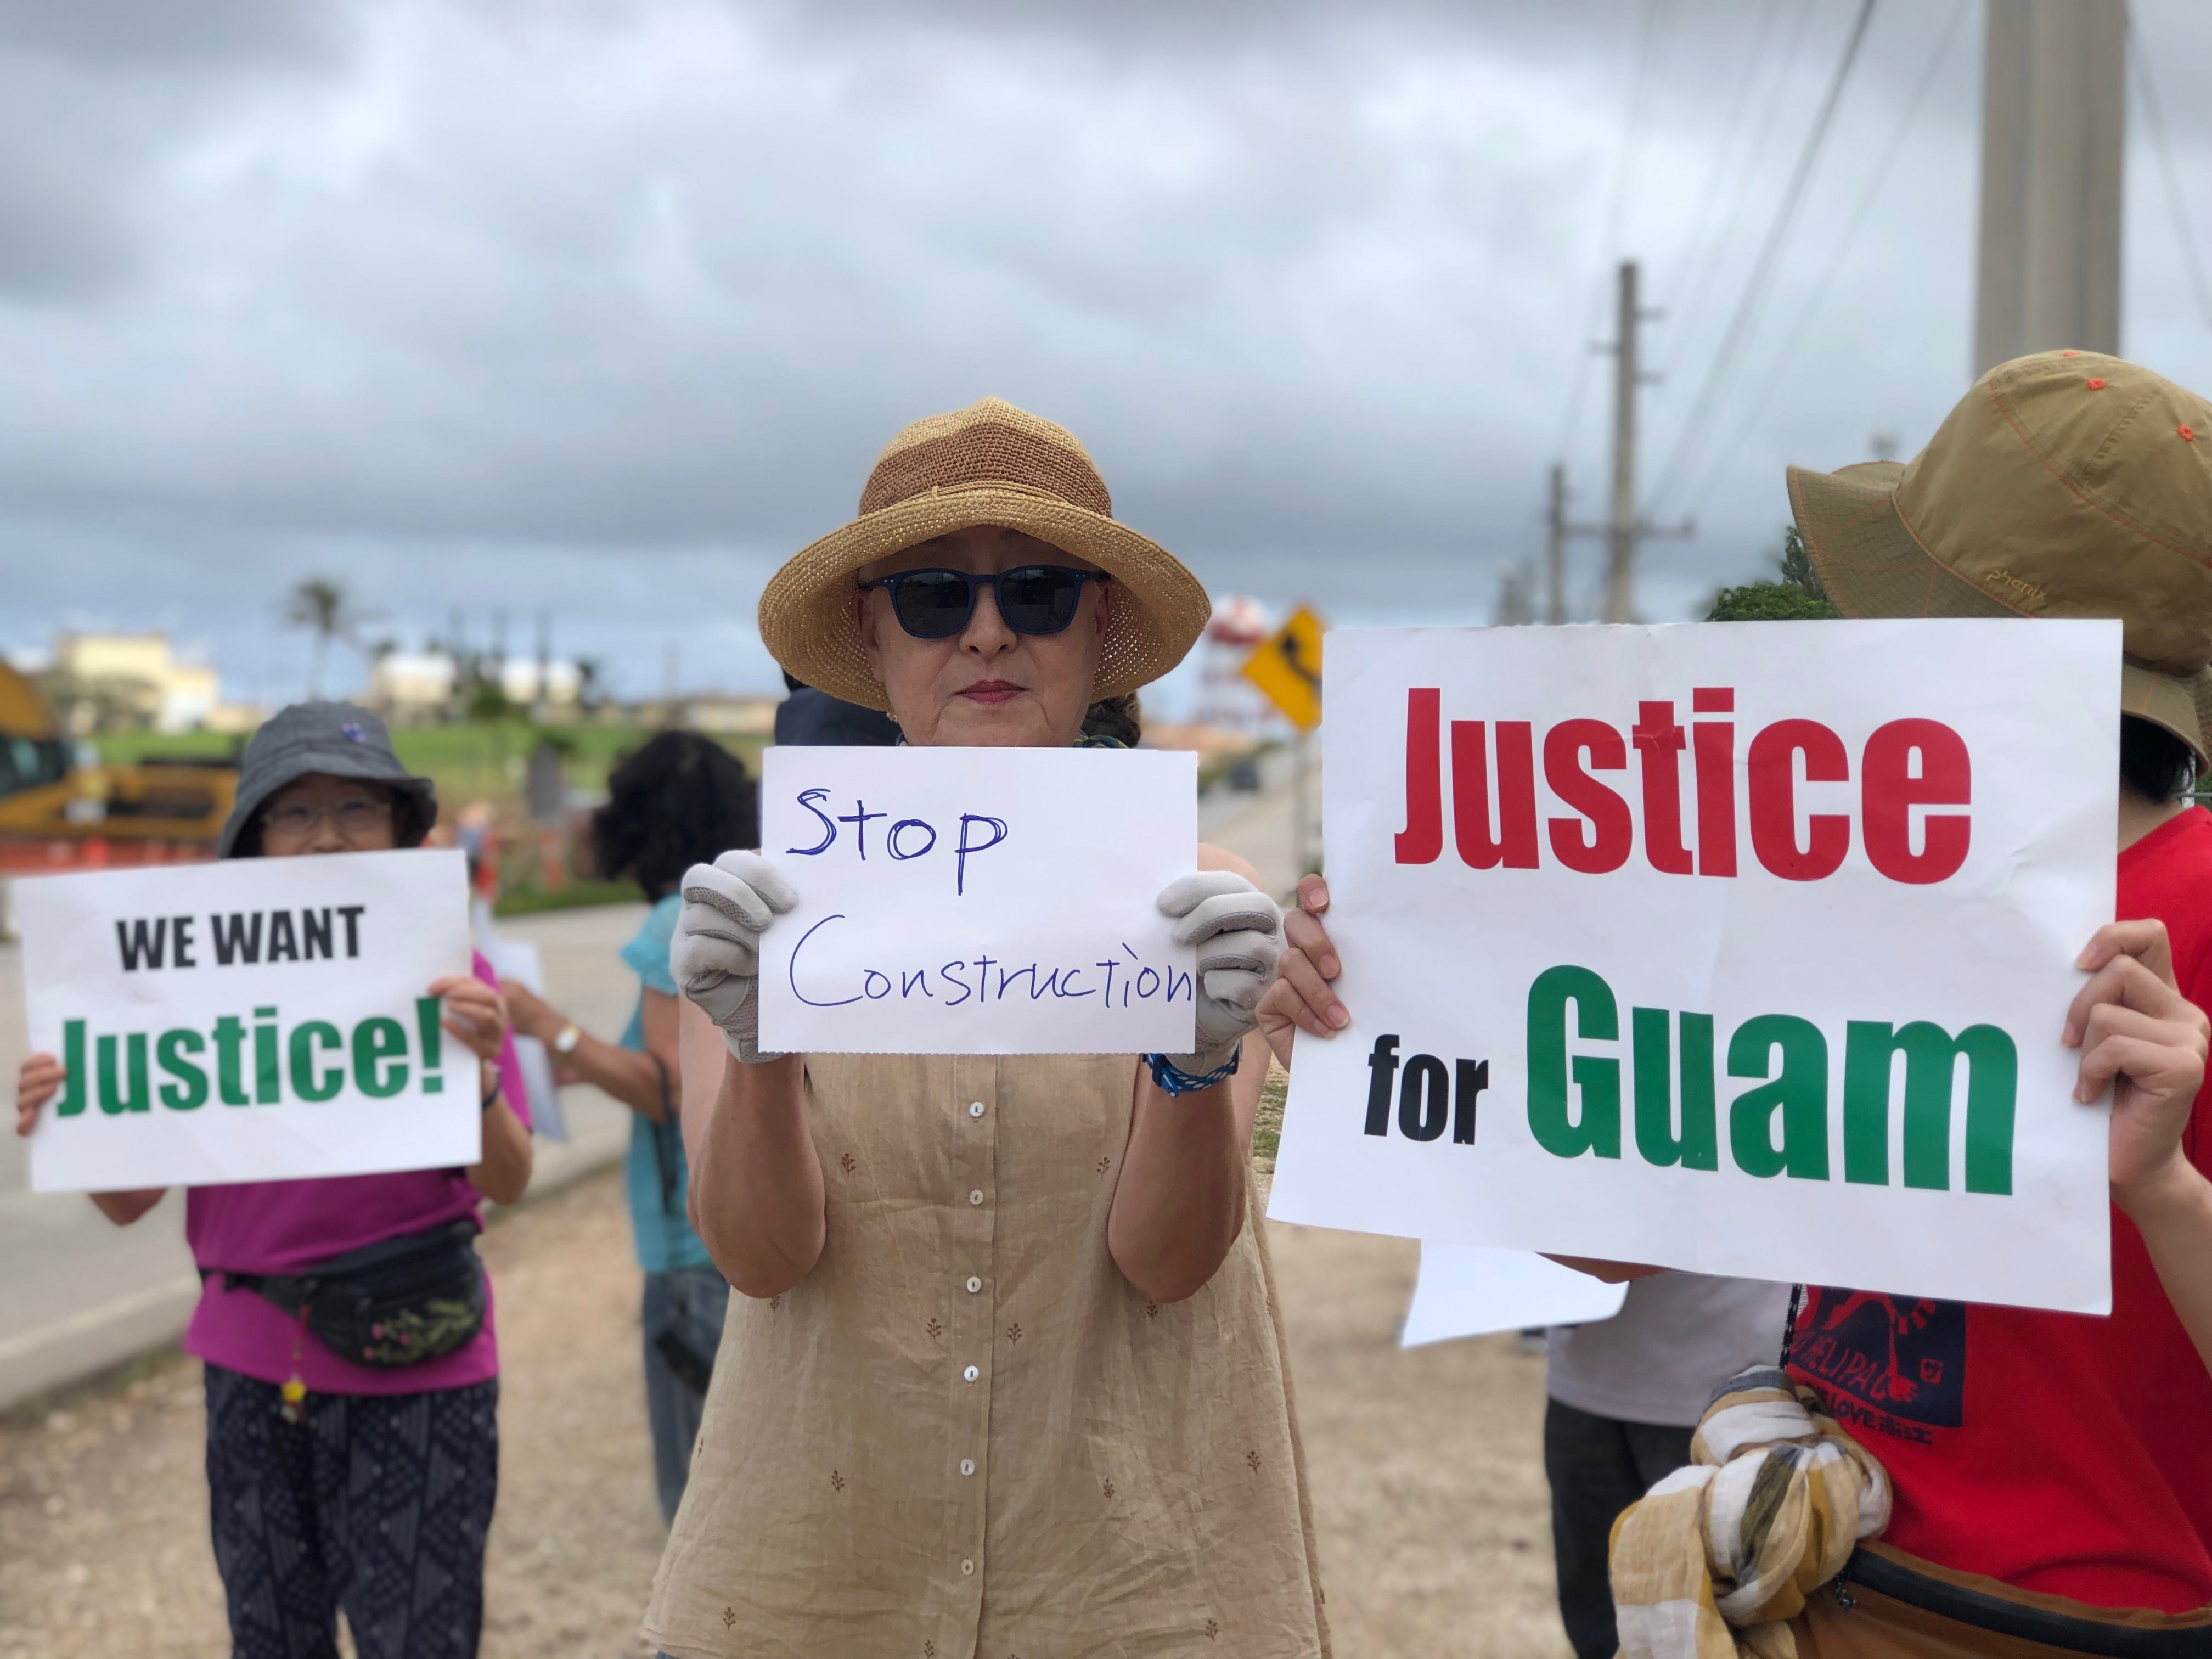 Among the demonstrators against proposed surface danger zone at finegayan were Japan residents visiting Guam to learn more about the buildup. Groups of people protested along Route 3 and in boats near the proposed zone on Saturday, Feb. 9, 2019.